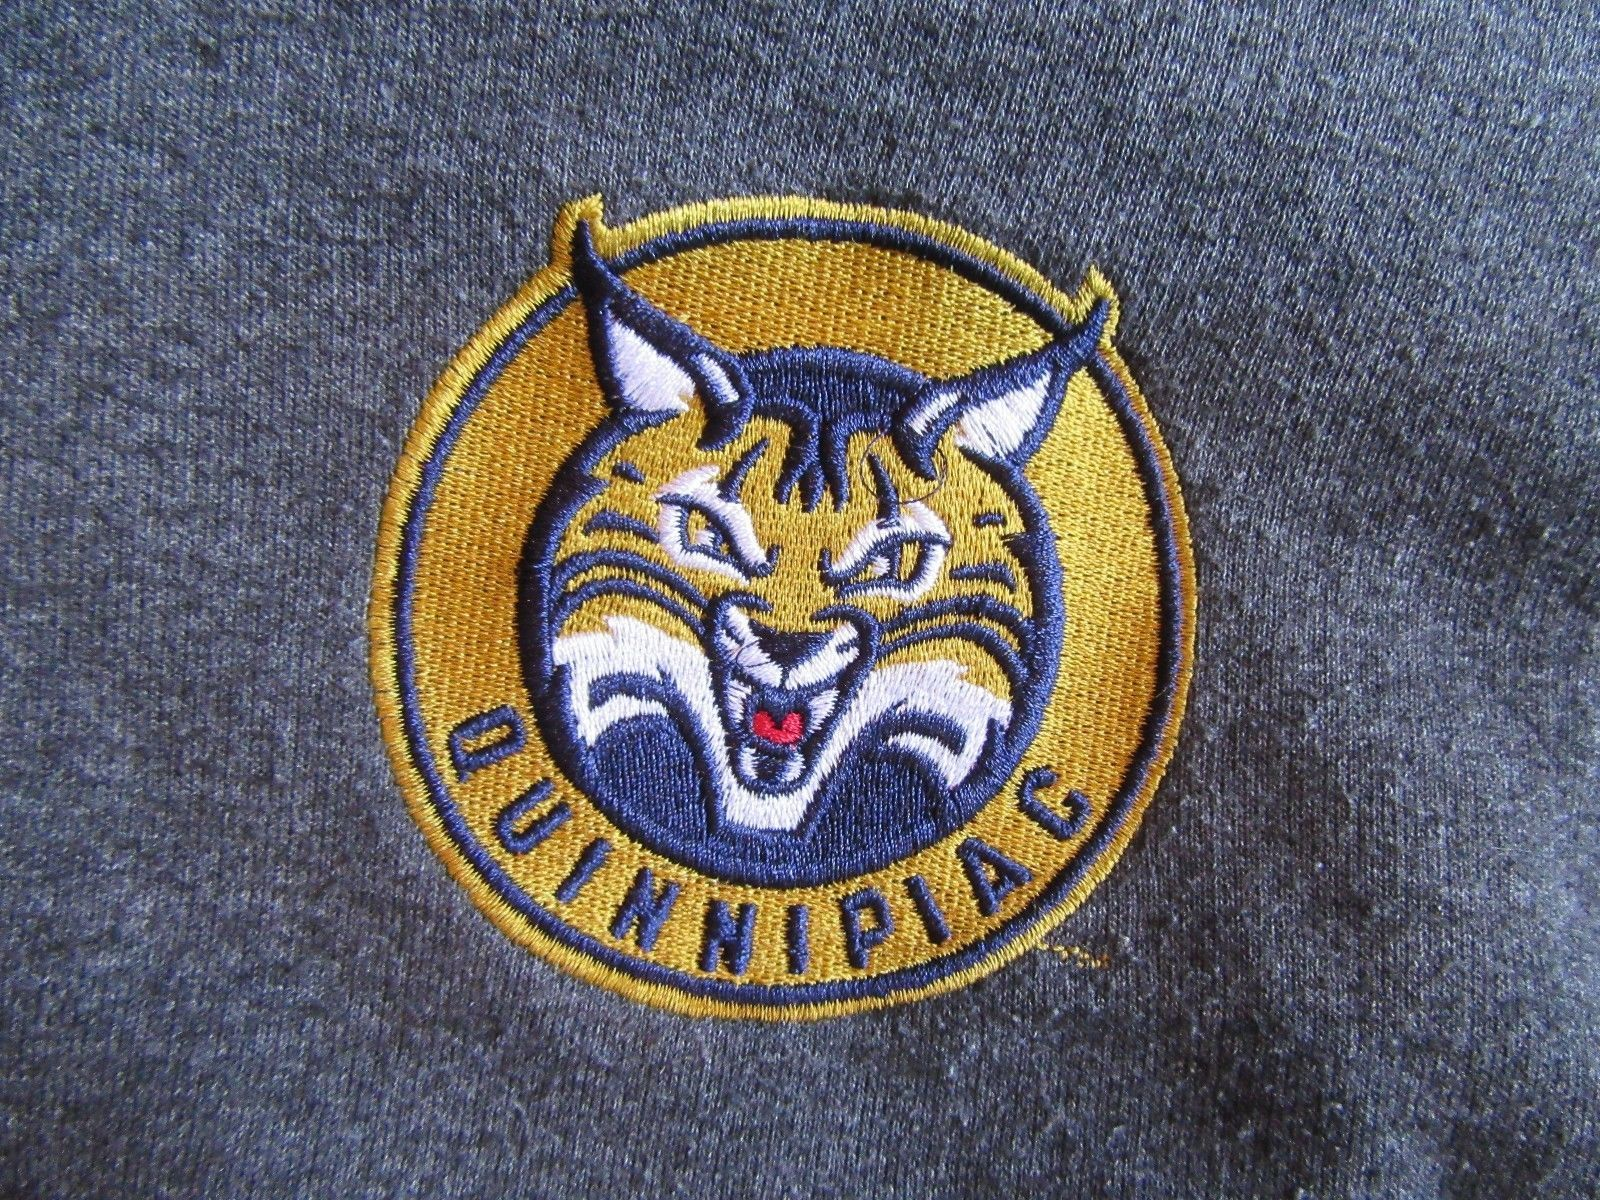 6Z/#2/QUINNIPIAC WOMENS PRE-OWNED SWEATSHIRT/GRAY/CHAMPION ECO FLEECE/SM!